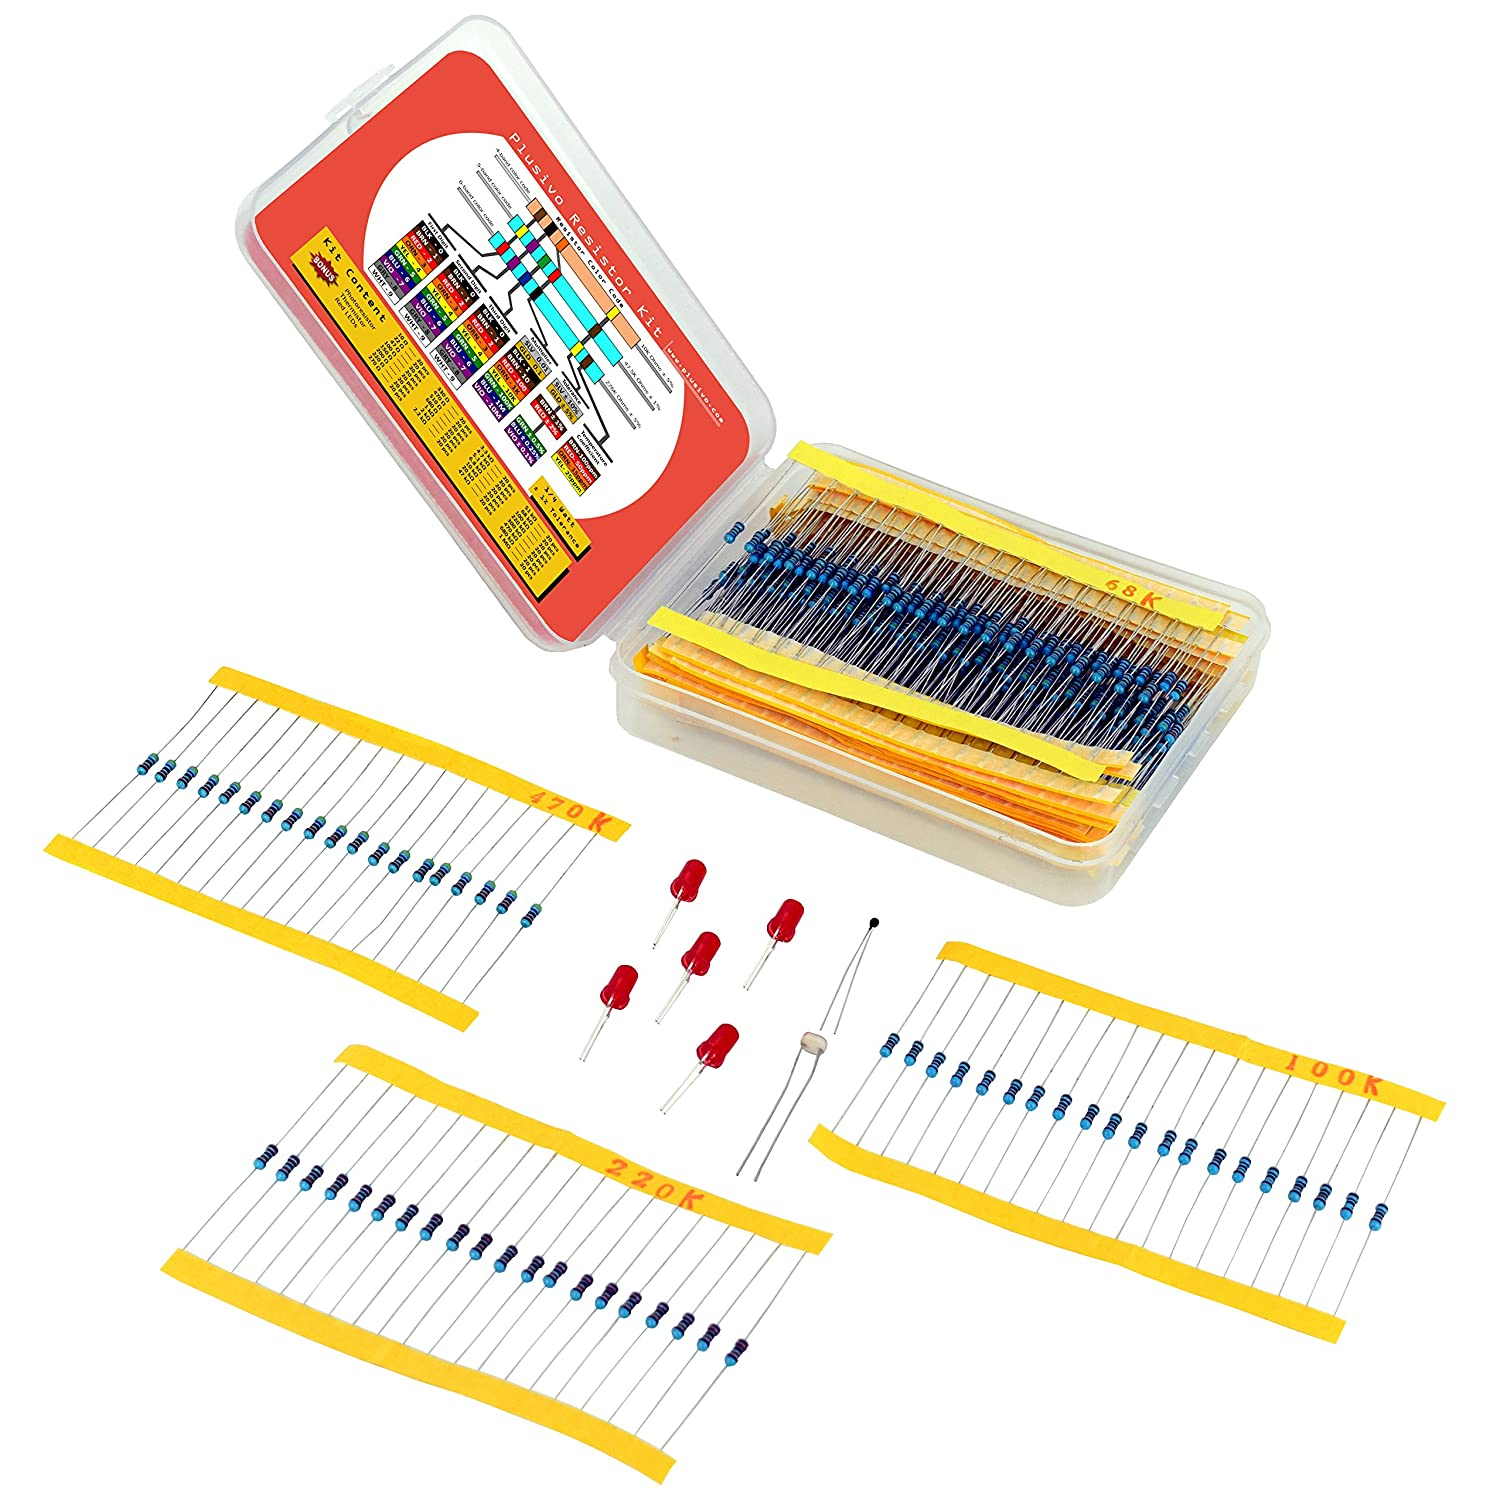 Metal Film Resistors Variety Pack with 30 Values Plus Thermistor Set of 600 Assorted Resistors from 10 Ohm to 1 MOhm in a Box Resistor Assortment Kit Photoresistor and 5 LEDs from Plusivo WiderCable